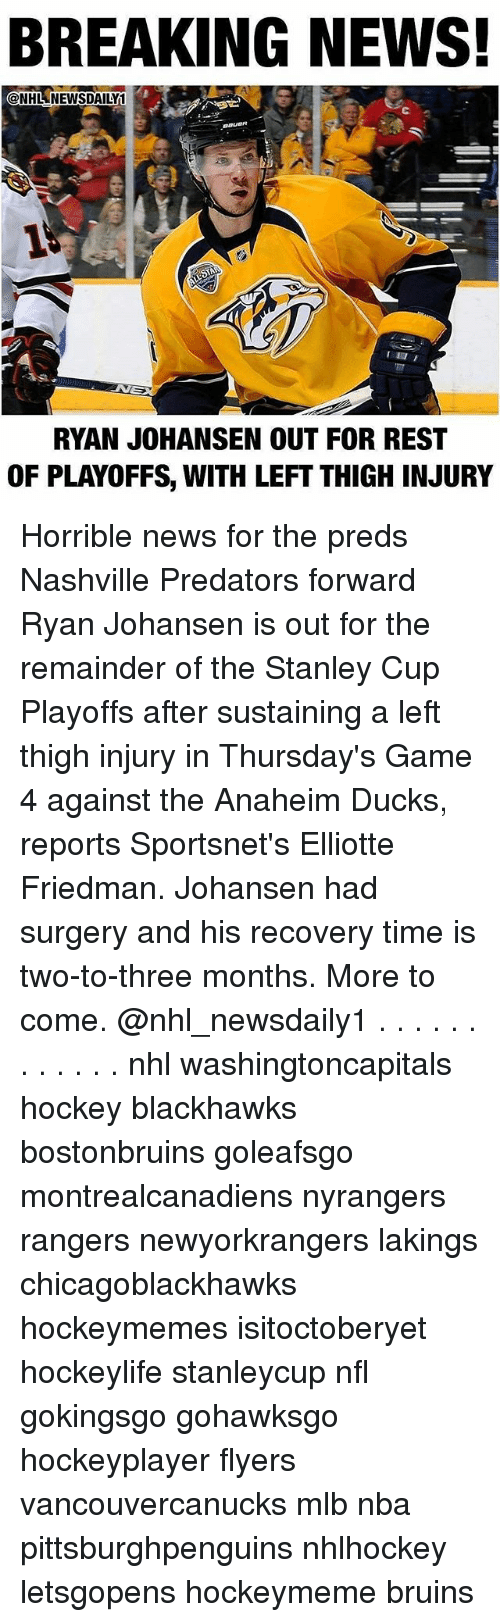 stanley cup playoffs: BREAKING NEWS!  @NHLNEWSDAILY1  RYAN JOHANSEN OUT FOR REST  OF PLAYOFFS, WITH LEFT THIGH INJURY Horrible news for the preds Nashville Predators forward Ryan Johansen is out for the remainder of the Stanley Cup Playoffs after sustaining a left thigh injury in Thursday's Game 4 against the Anaheim Ducks, reports Sportsnet's Elliotte Friedman. Johansen had surgery and his recovery time is two-to-three months. More to come. @nhl_newsdaily1 . . . . . . . . . . . . nhl washingtoncapitals hockey blackhawks bostonbruins goleafsgo montrealcanadiens nyrangers rangers newyorkrangers lakings chicagoblackhawks hockeymemes isitoctoberyet hockeylife stanleycup nfl gokingsgo gohawksgo hockeyplayer flyers vancouvercanucks mlb nba pittsburghpenguins nhlhockey letsgopens hockeymeme bruins